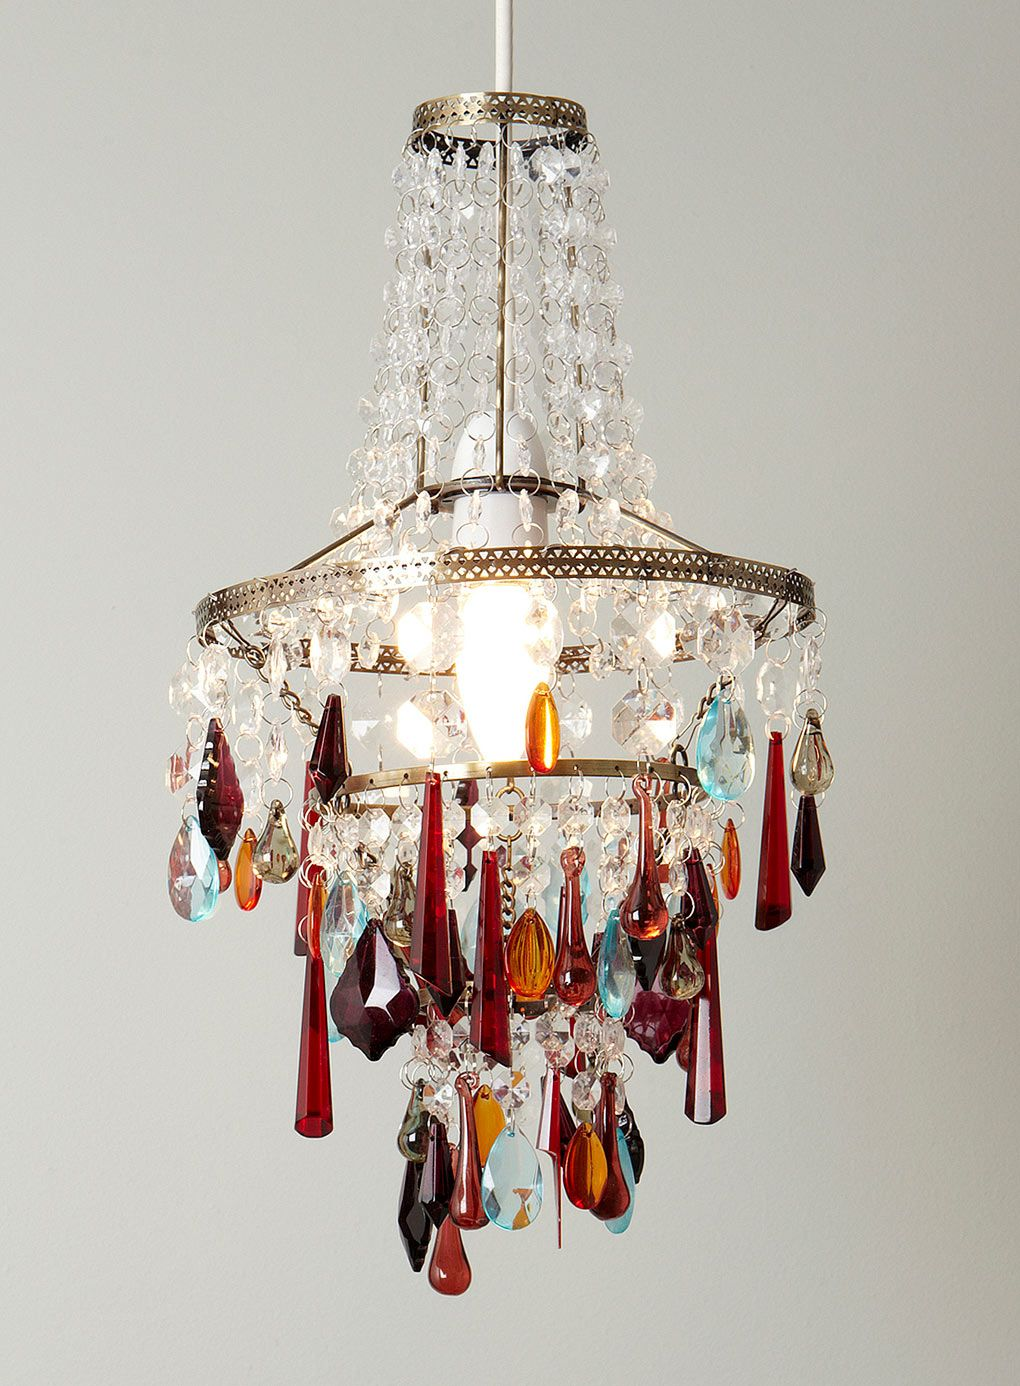 Babushka Ceiling Light From Bhs Like The Table Lamp